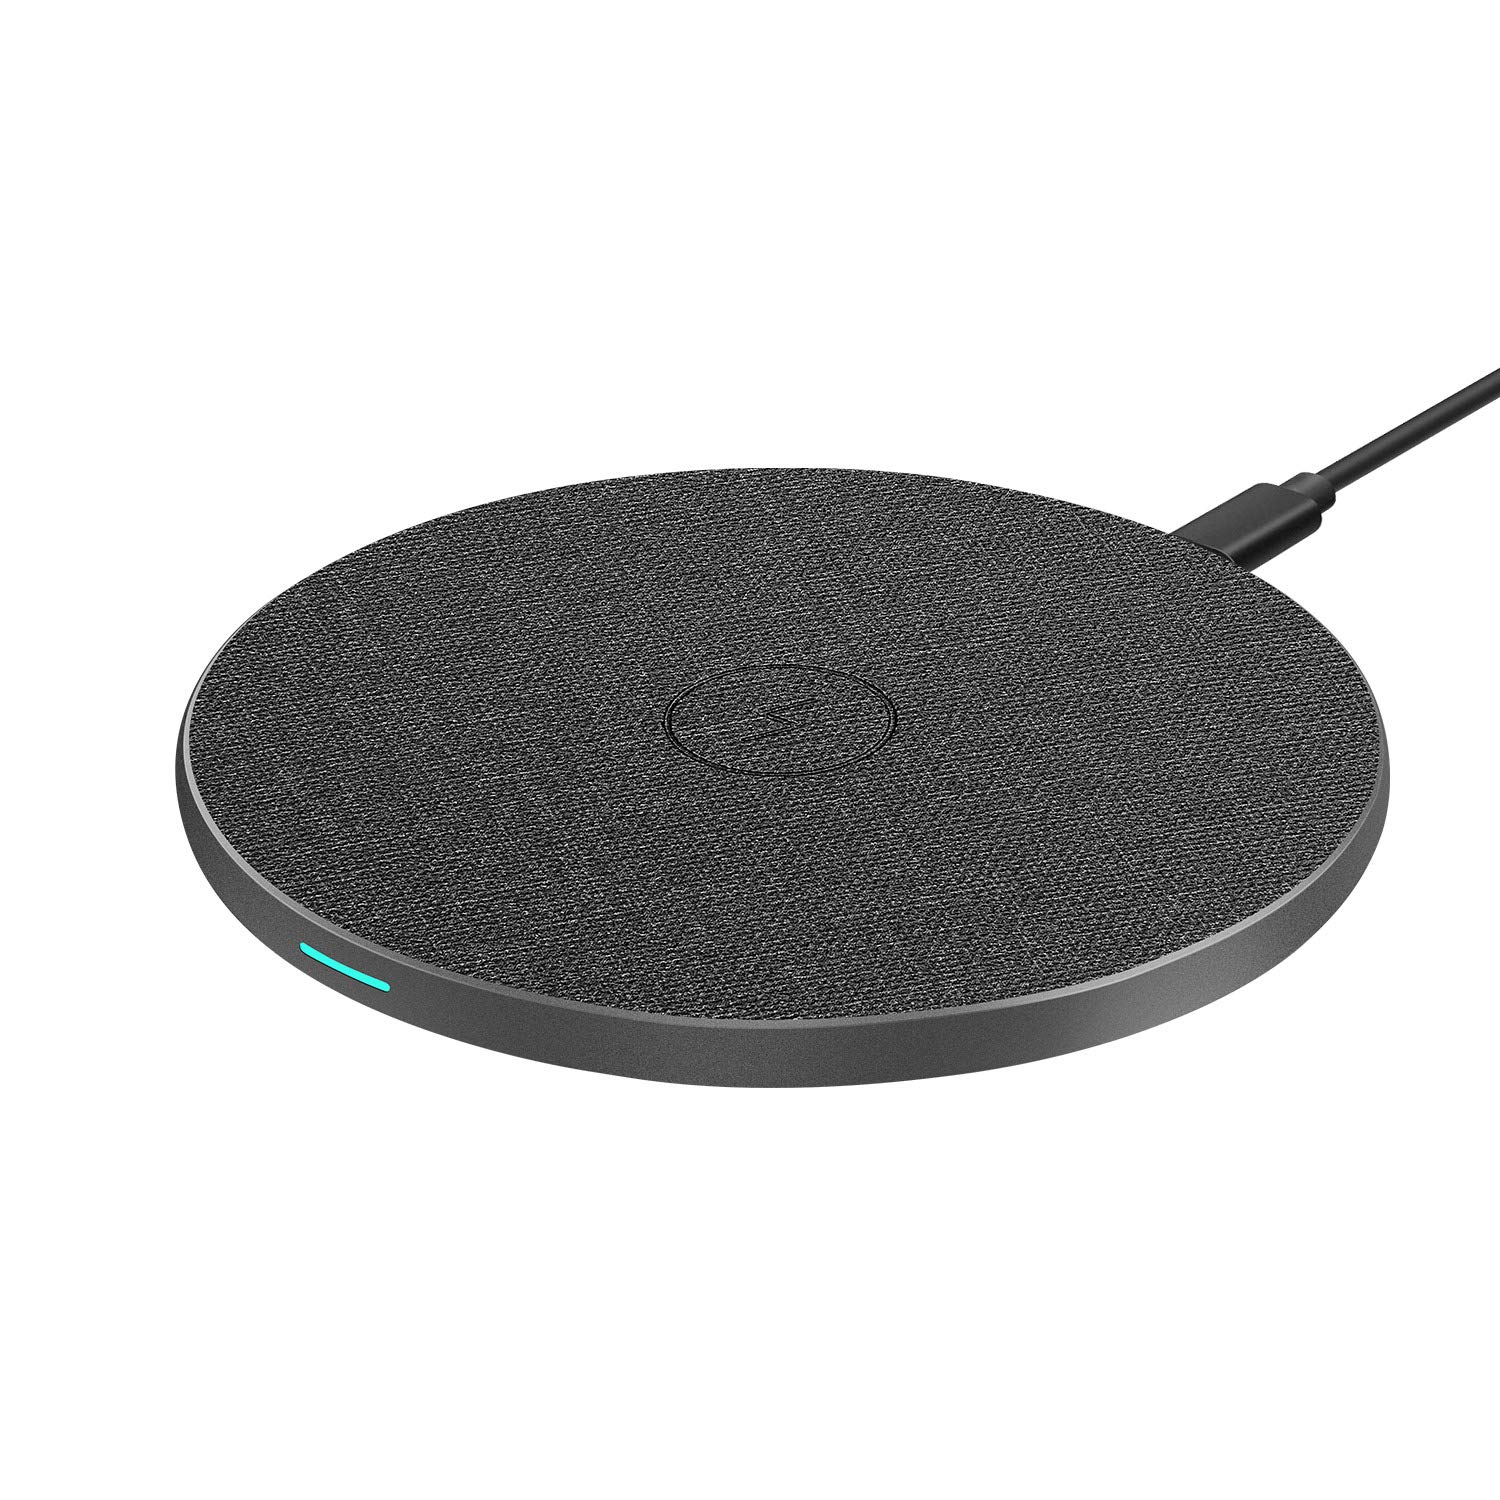 Galaxy Note 10//Note 10 Plus//S10//S10 Plus//S10E WISFOX Wireless Charger Upgraded Qi-Certified 10W Max Fast Universal Wireless Charging for iPhone 11//11 Pro//11 Pro Max//XS MAX//XR//XS//8 Plus No AC Adapter